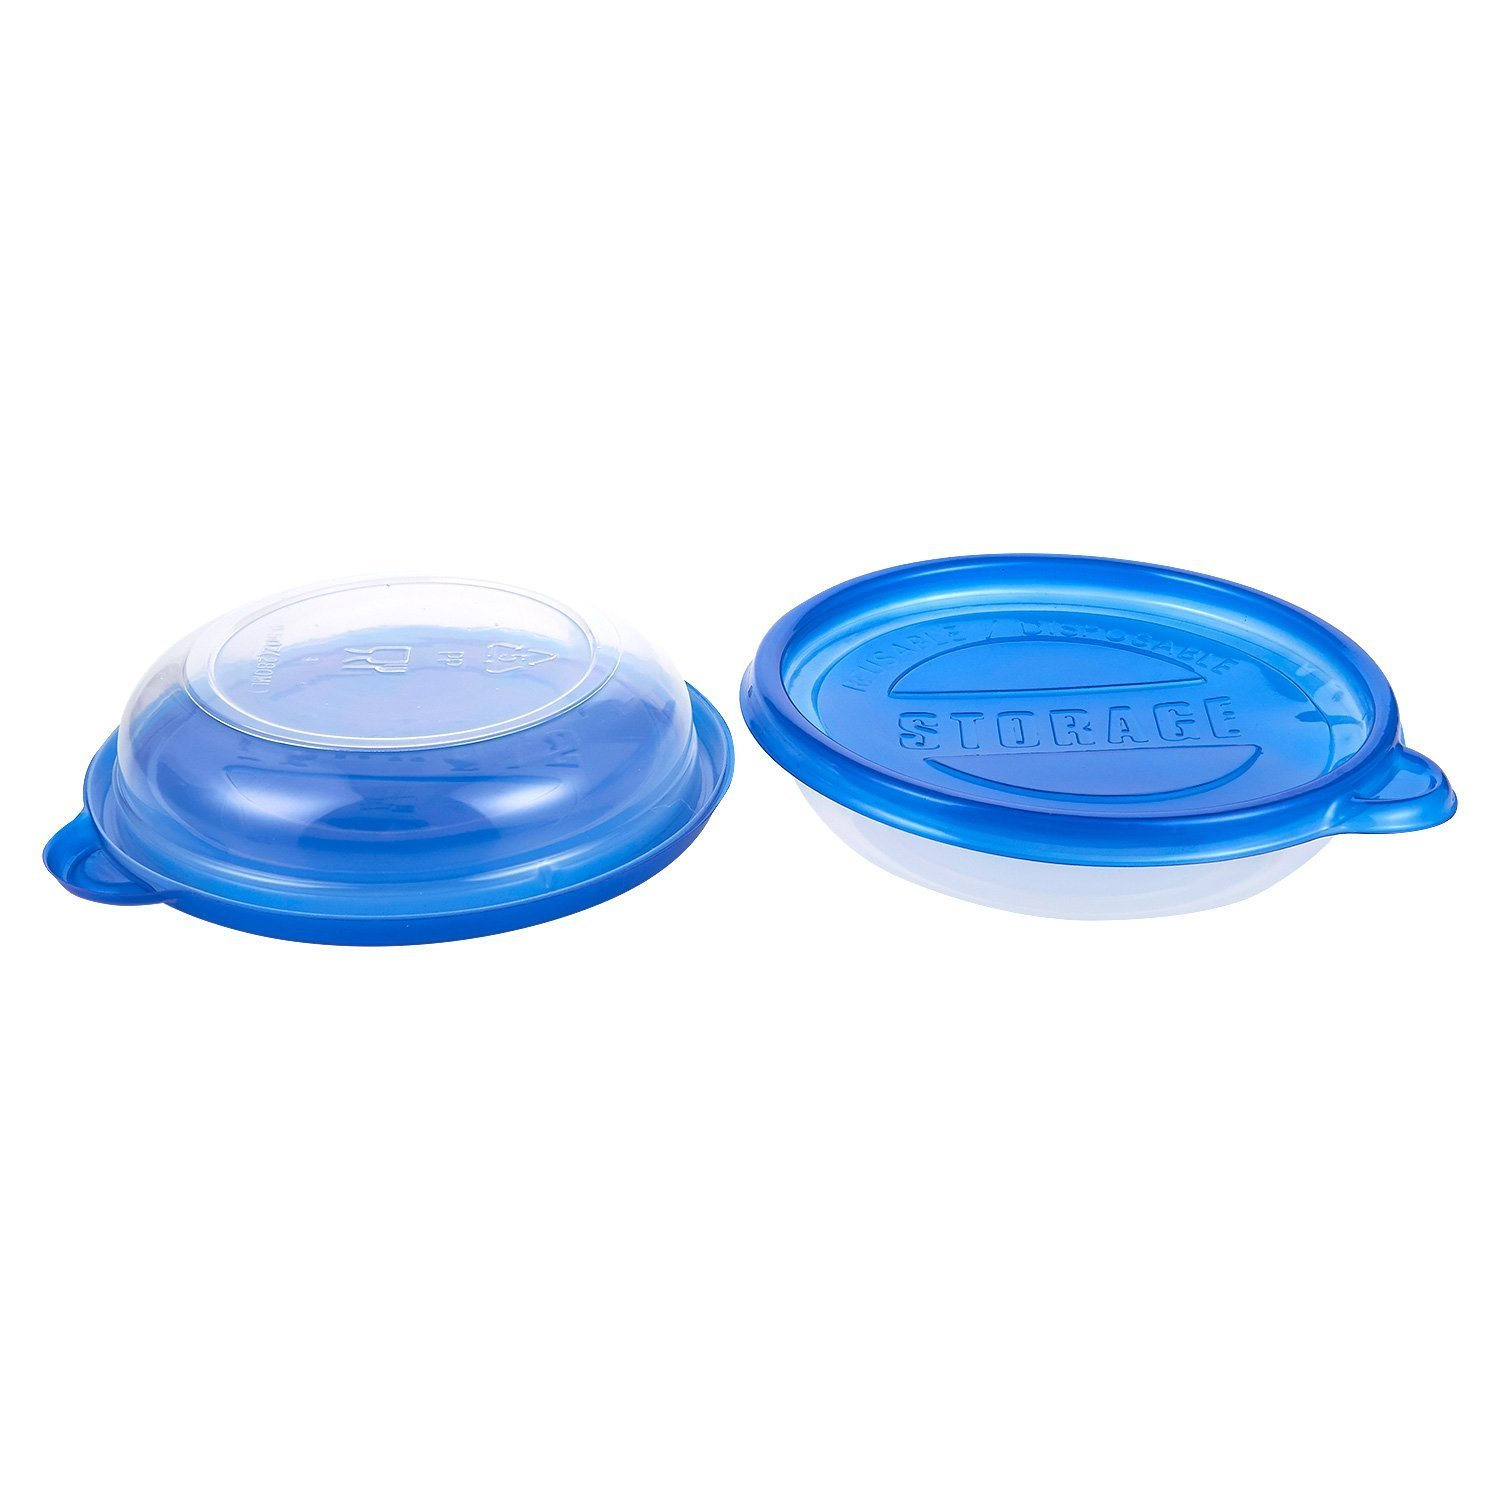 40-Pack Plastic Food Containers with Lids - Small Round Food Storage Containers, Deli Take Out Restaurant Containers, Microwave, Freezer, Dishwasher Safe, Fits 9.5 Fluid Ounces, 9.5 fl oz by Juvale (Image #7)